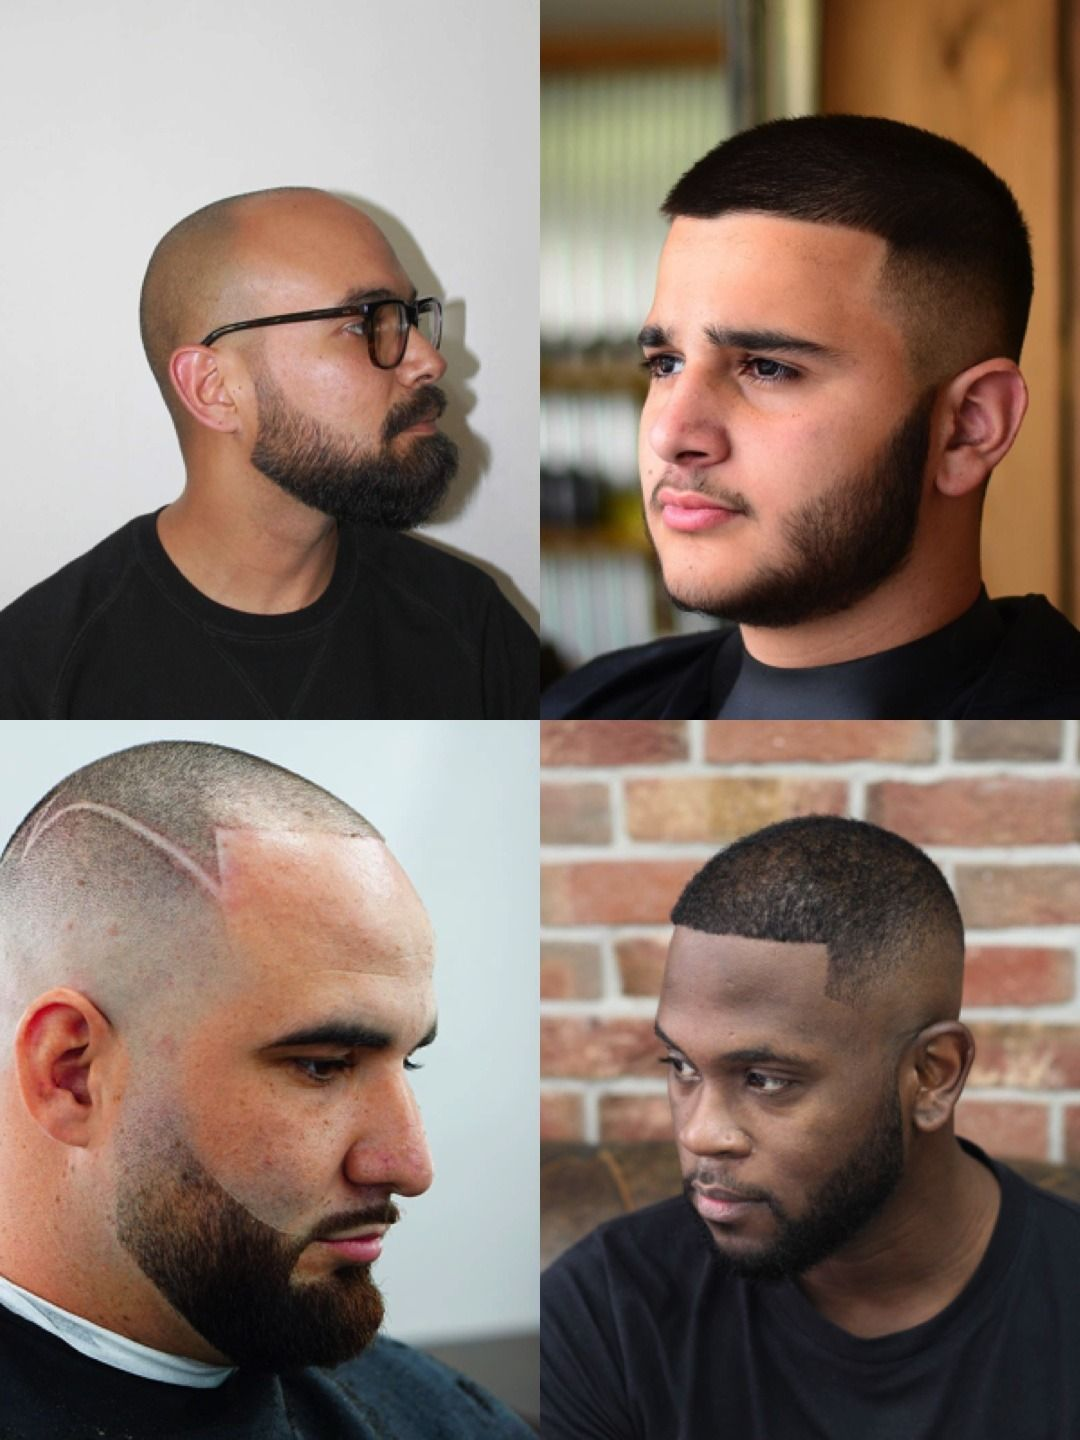 Pin on Buzz cut for men